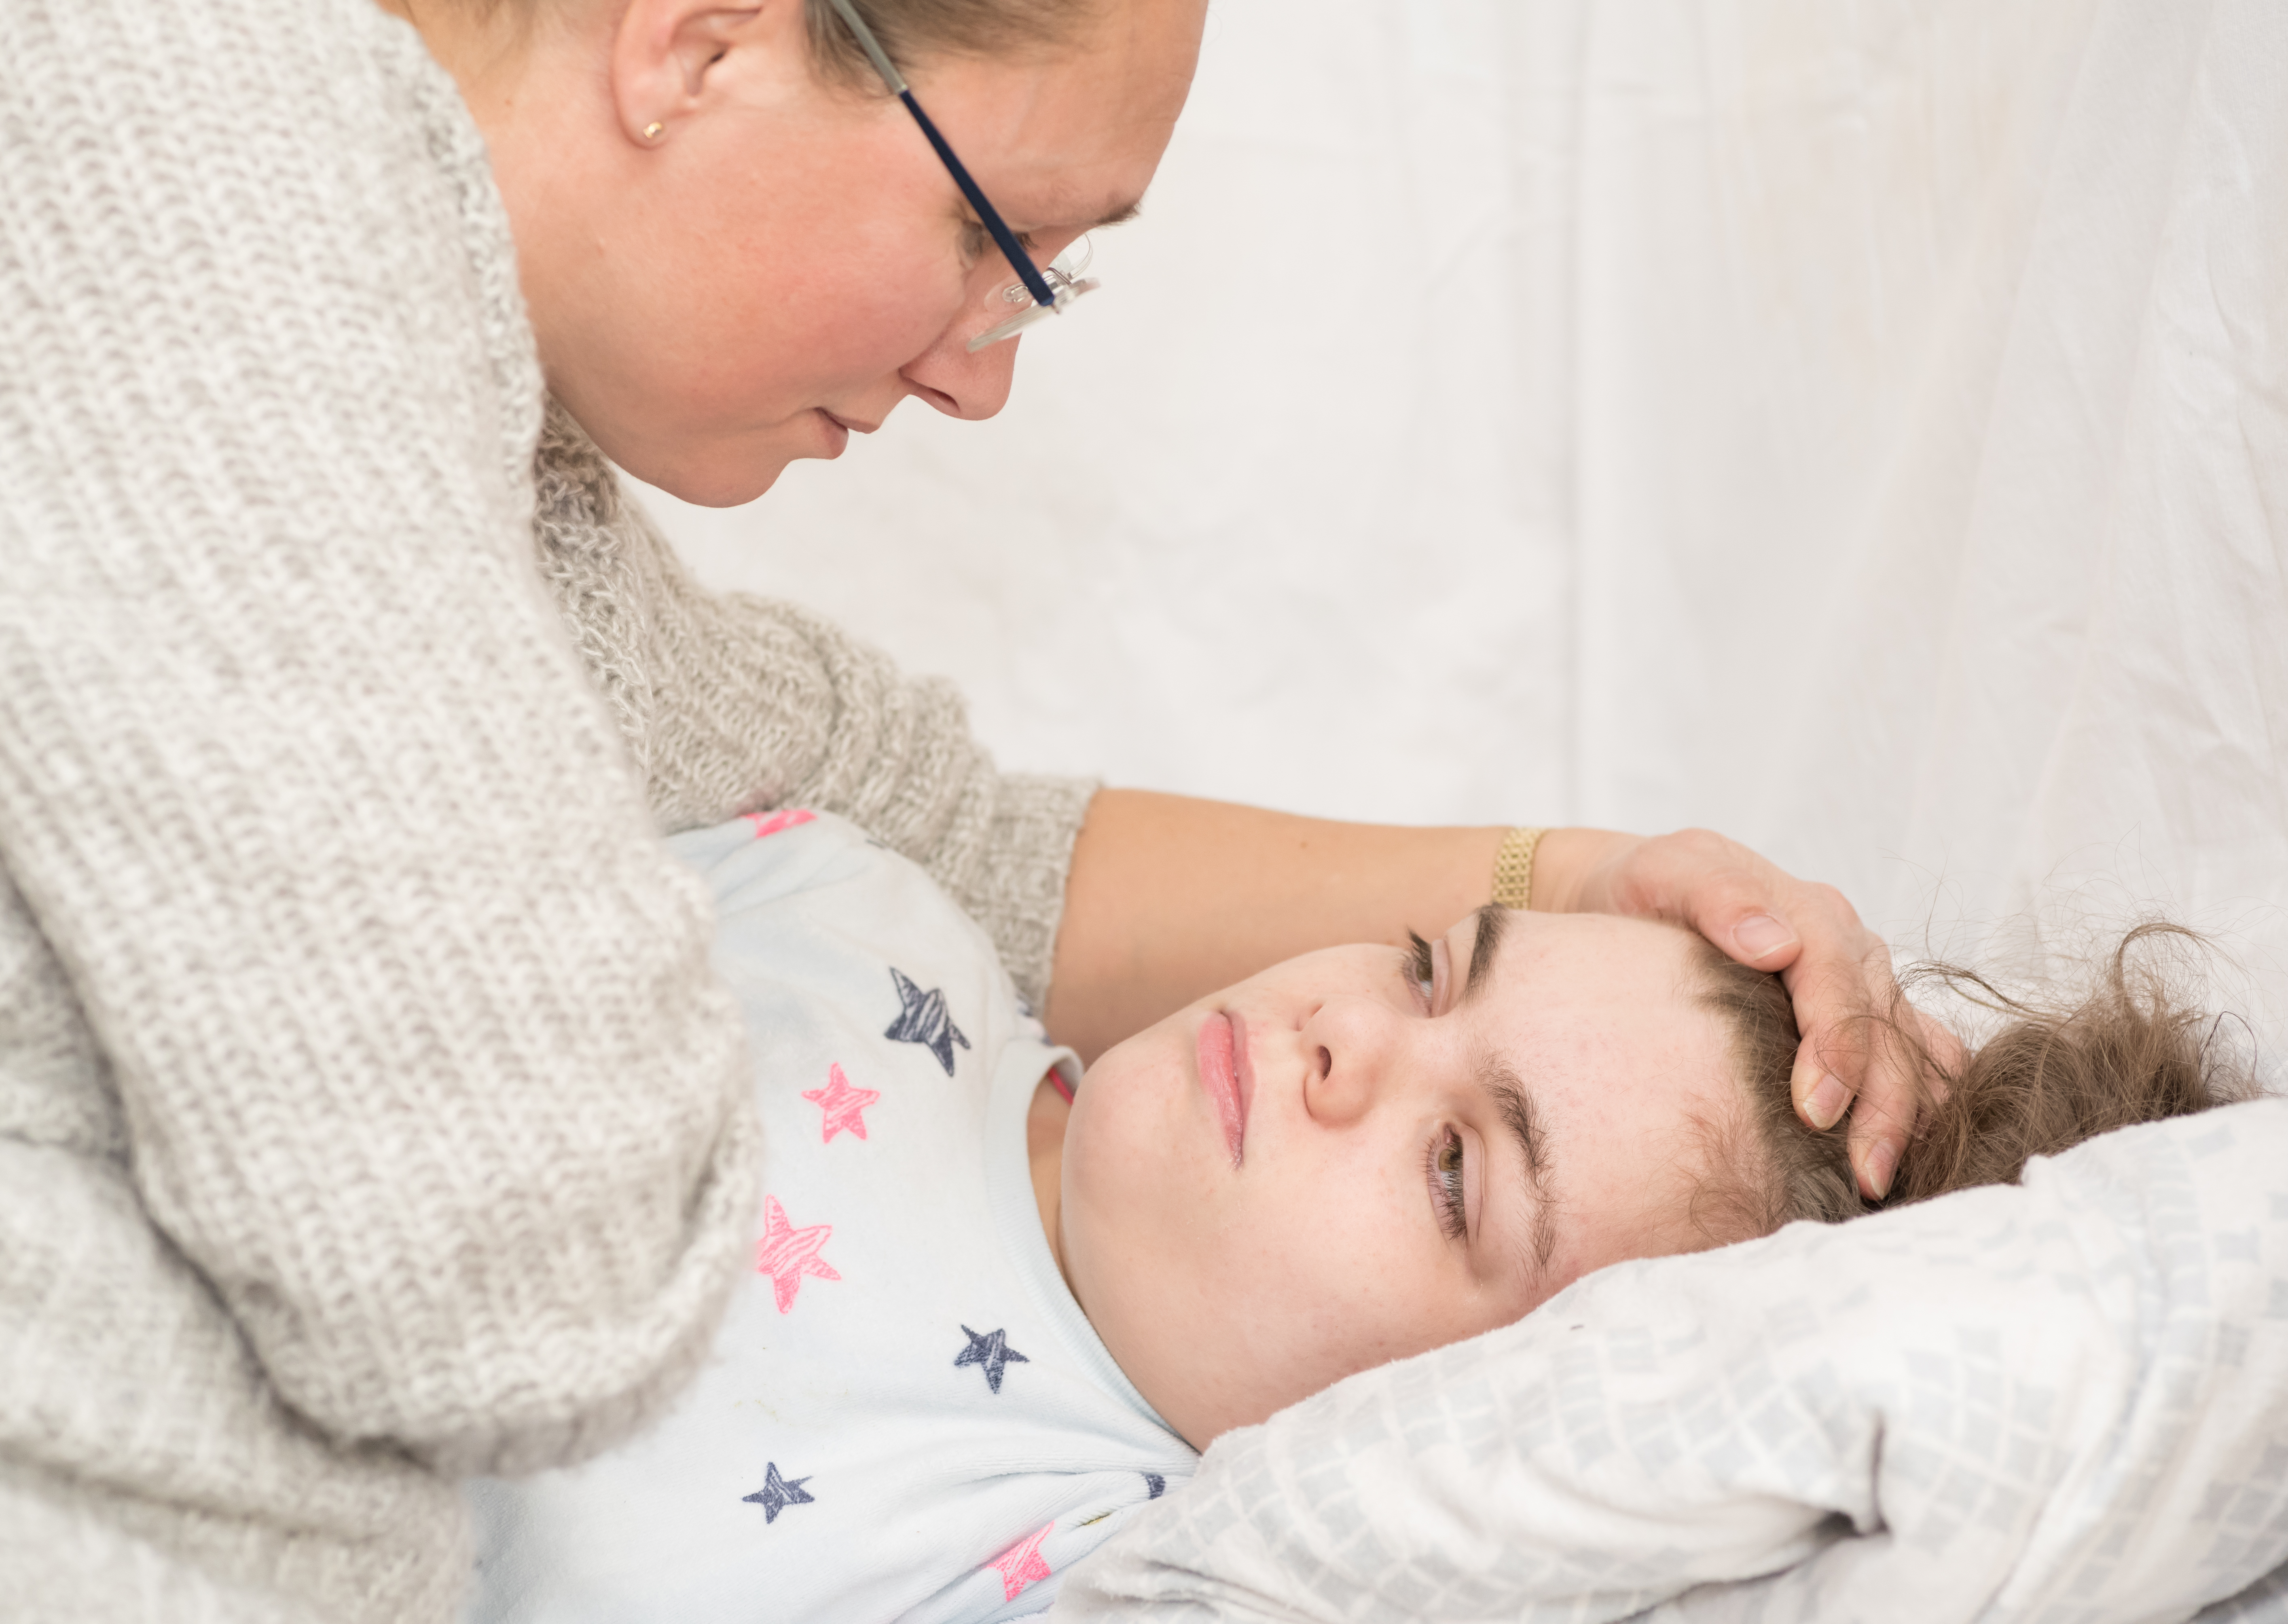 A Child Being Cared For During An Epileptic Seizure By A Qualifi